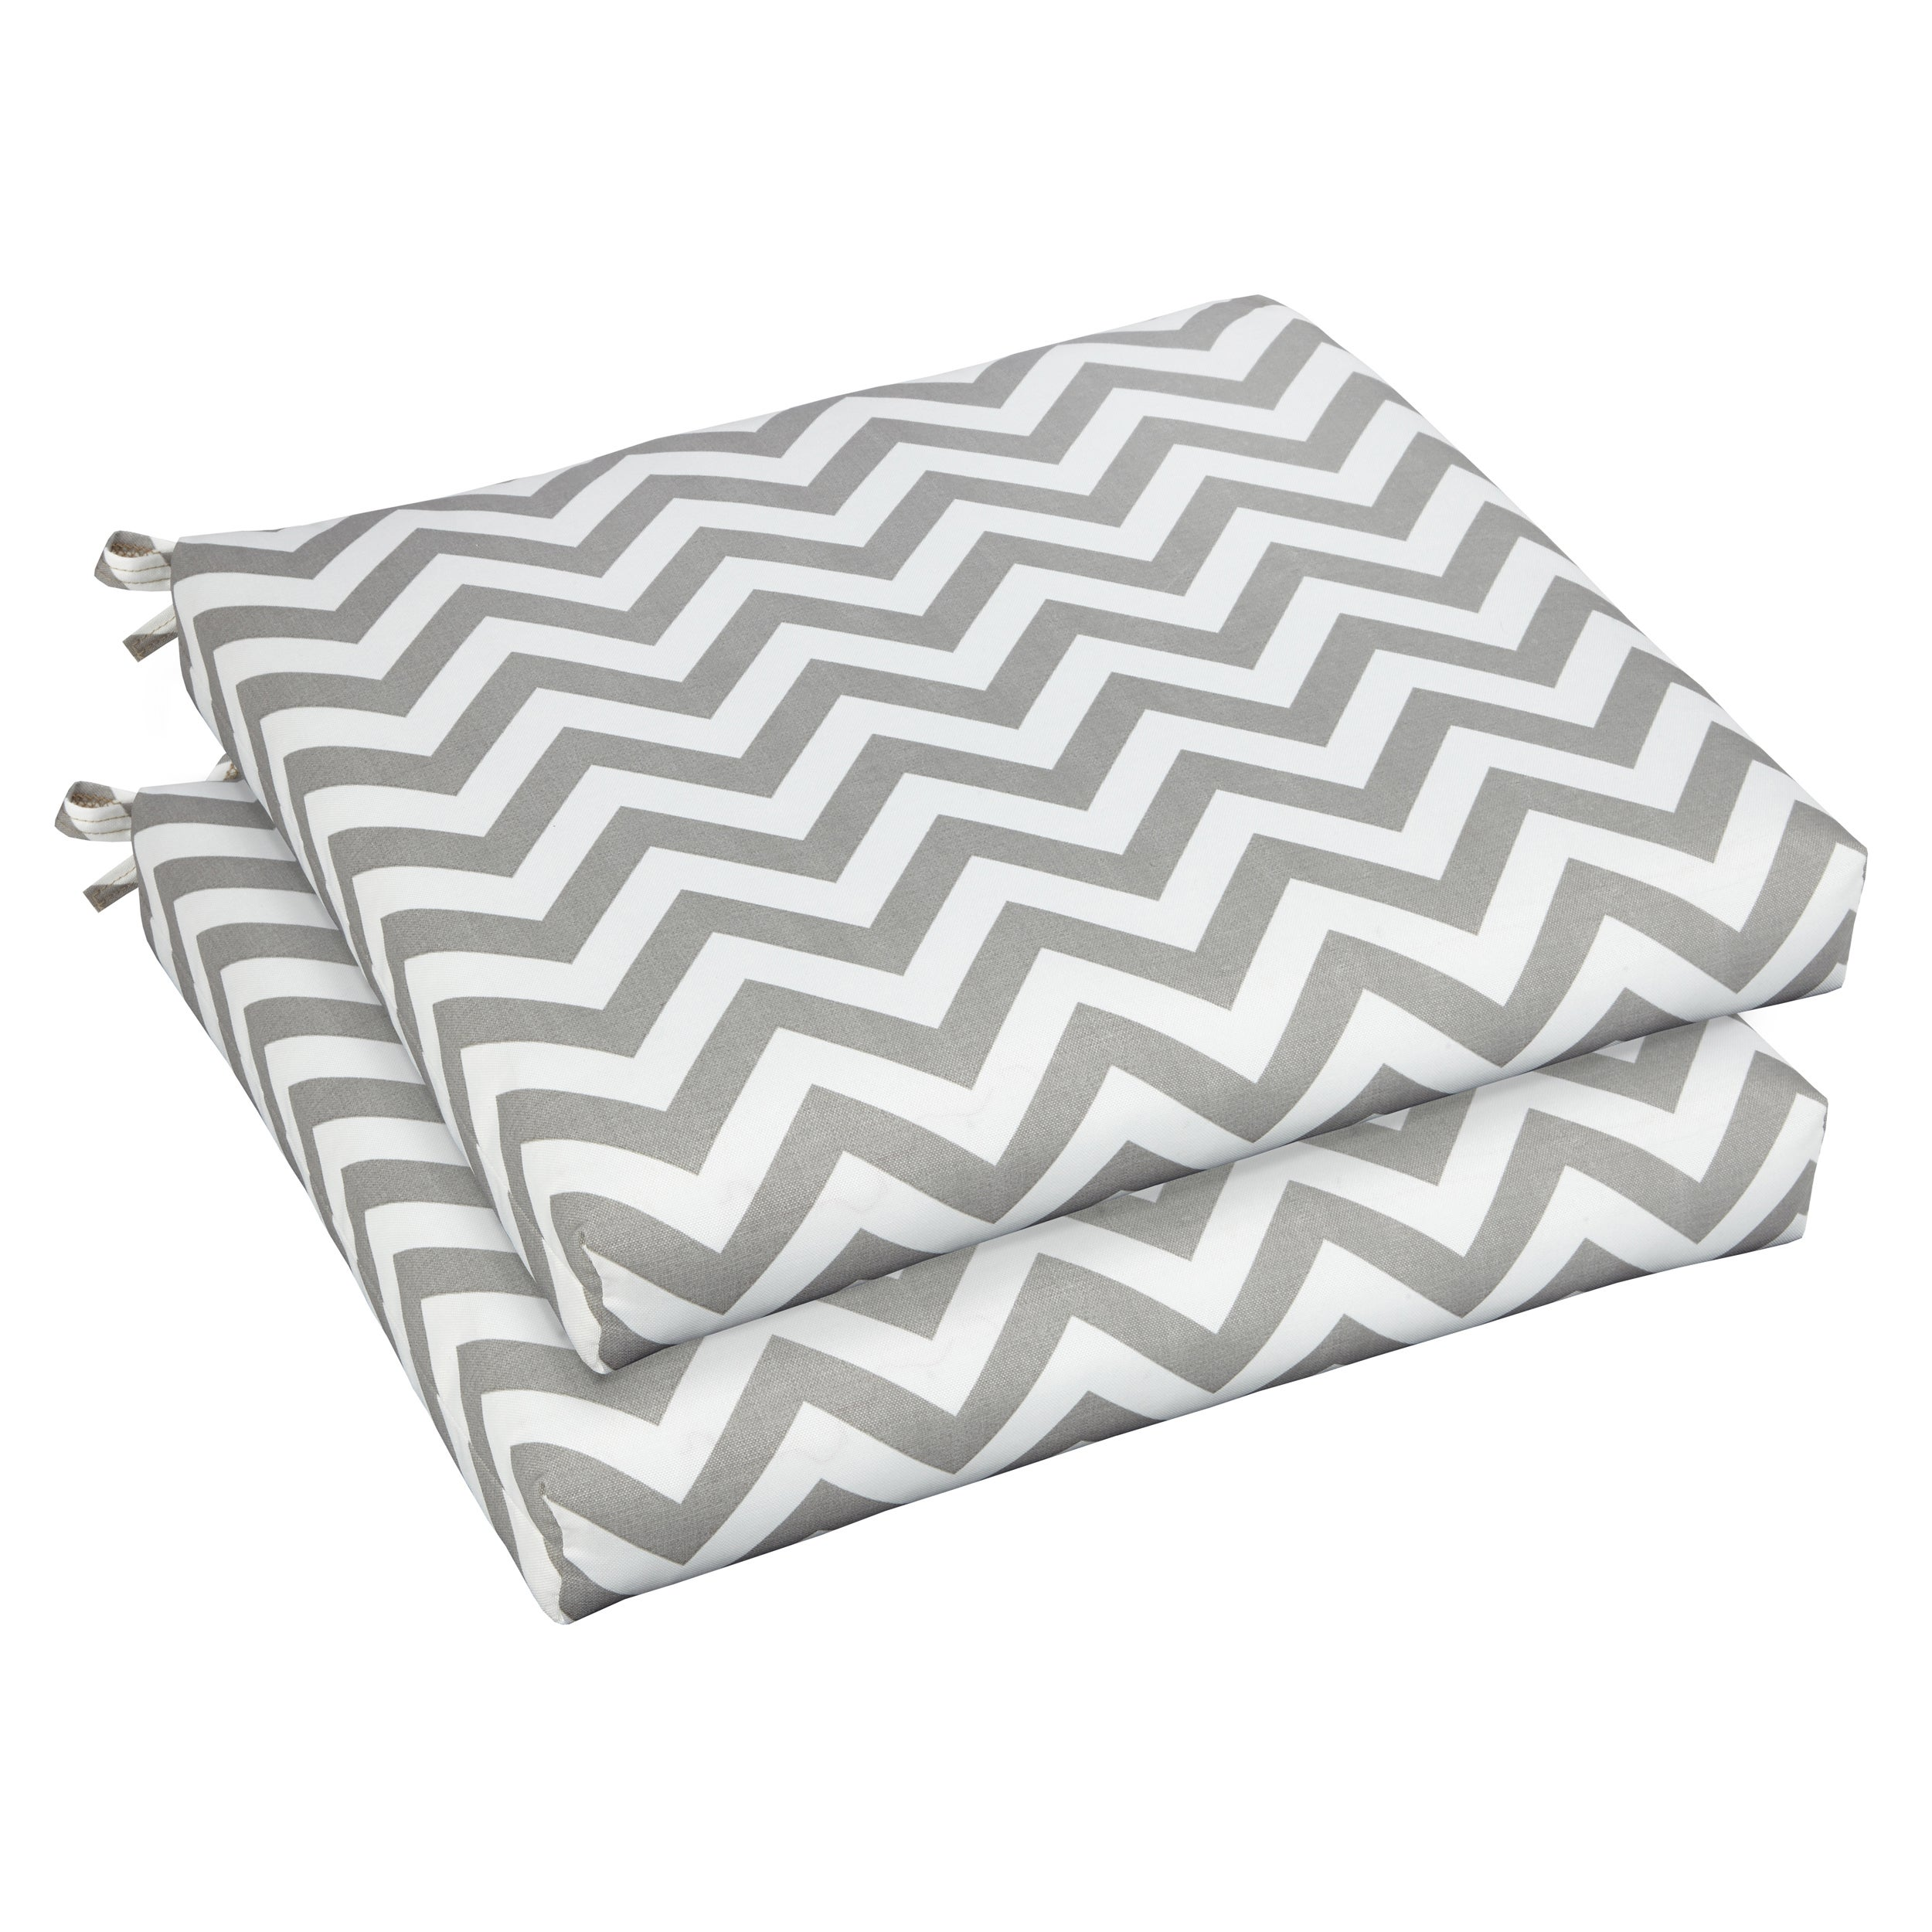 Remarkable Details About Bristol 20 Inch Indoor Outdoor Grey Chevron Chair Cushion Grey Vessel Gmtry Best Dining Table And Chair Ideas Images Gmtryco